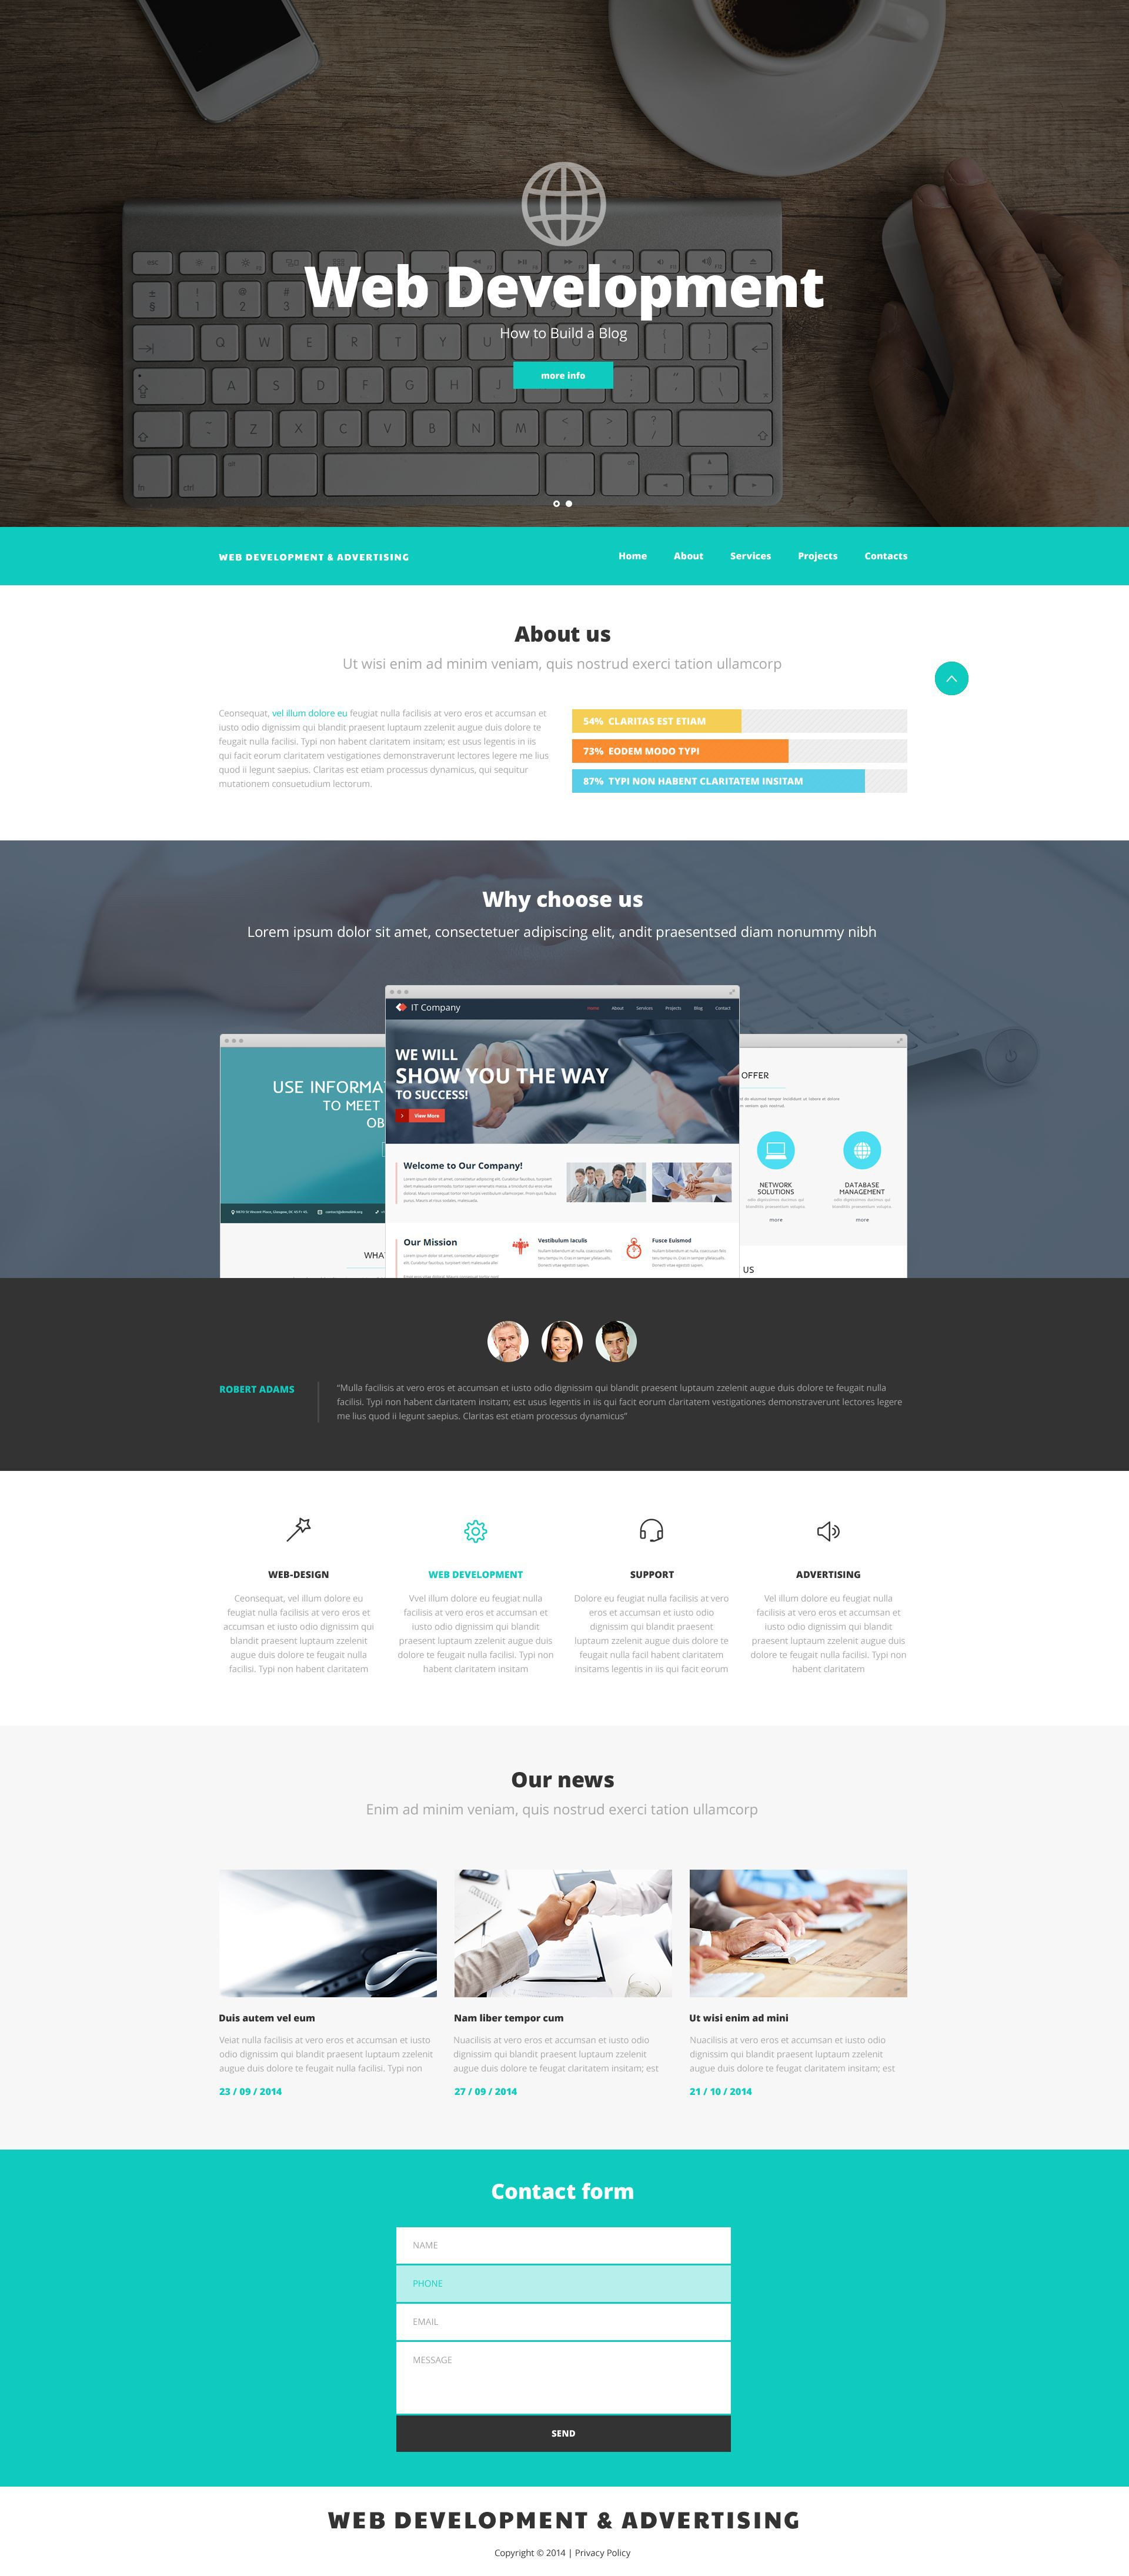 Web Design And Advertising Website Template Website Design Web Advertising Ecommerce Website Design Web Design Tips Web Design Quotes